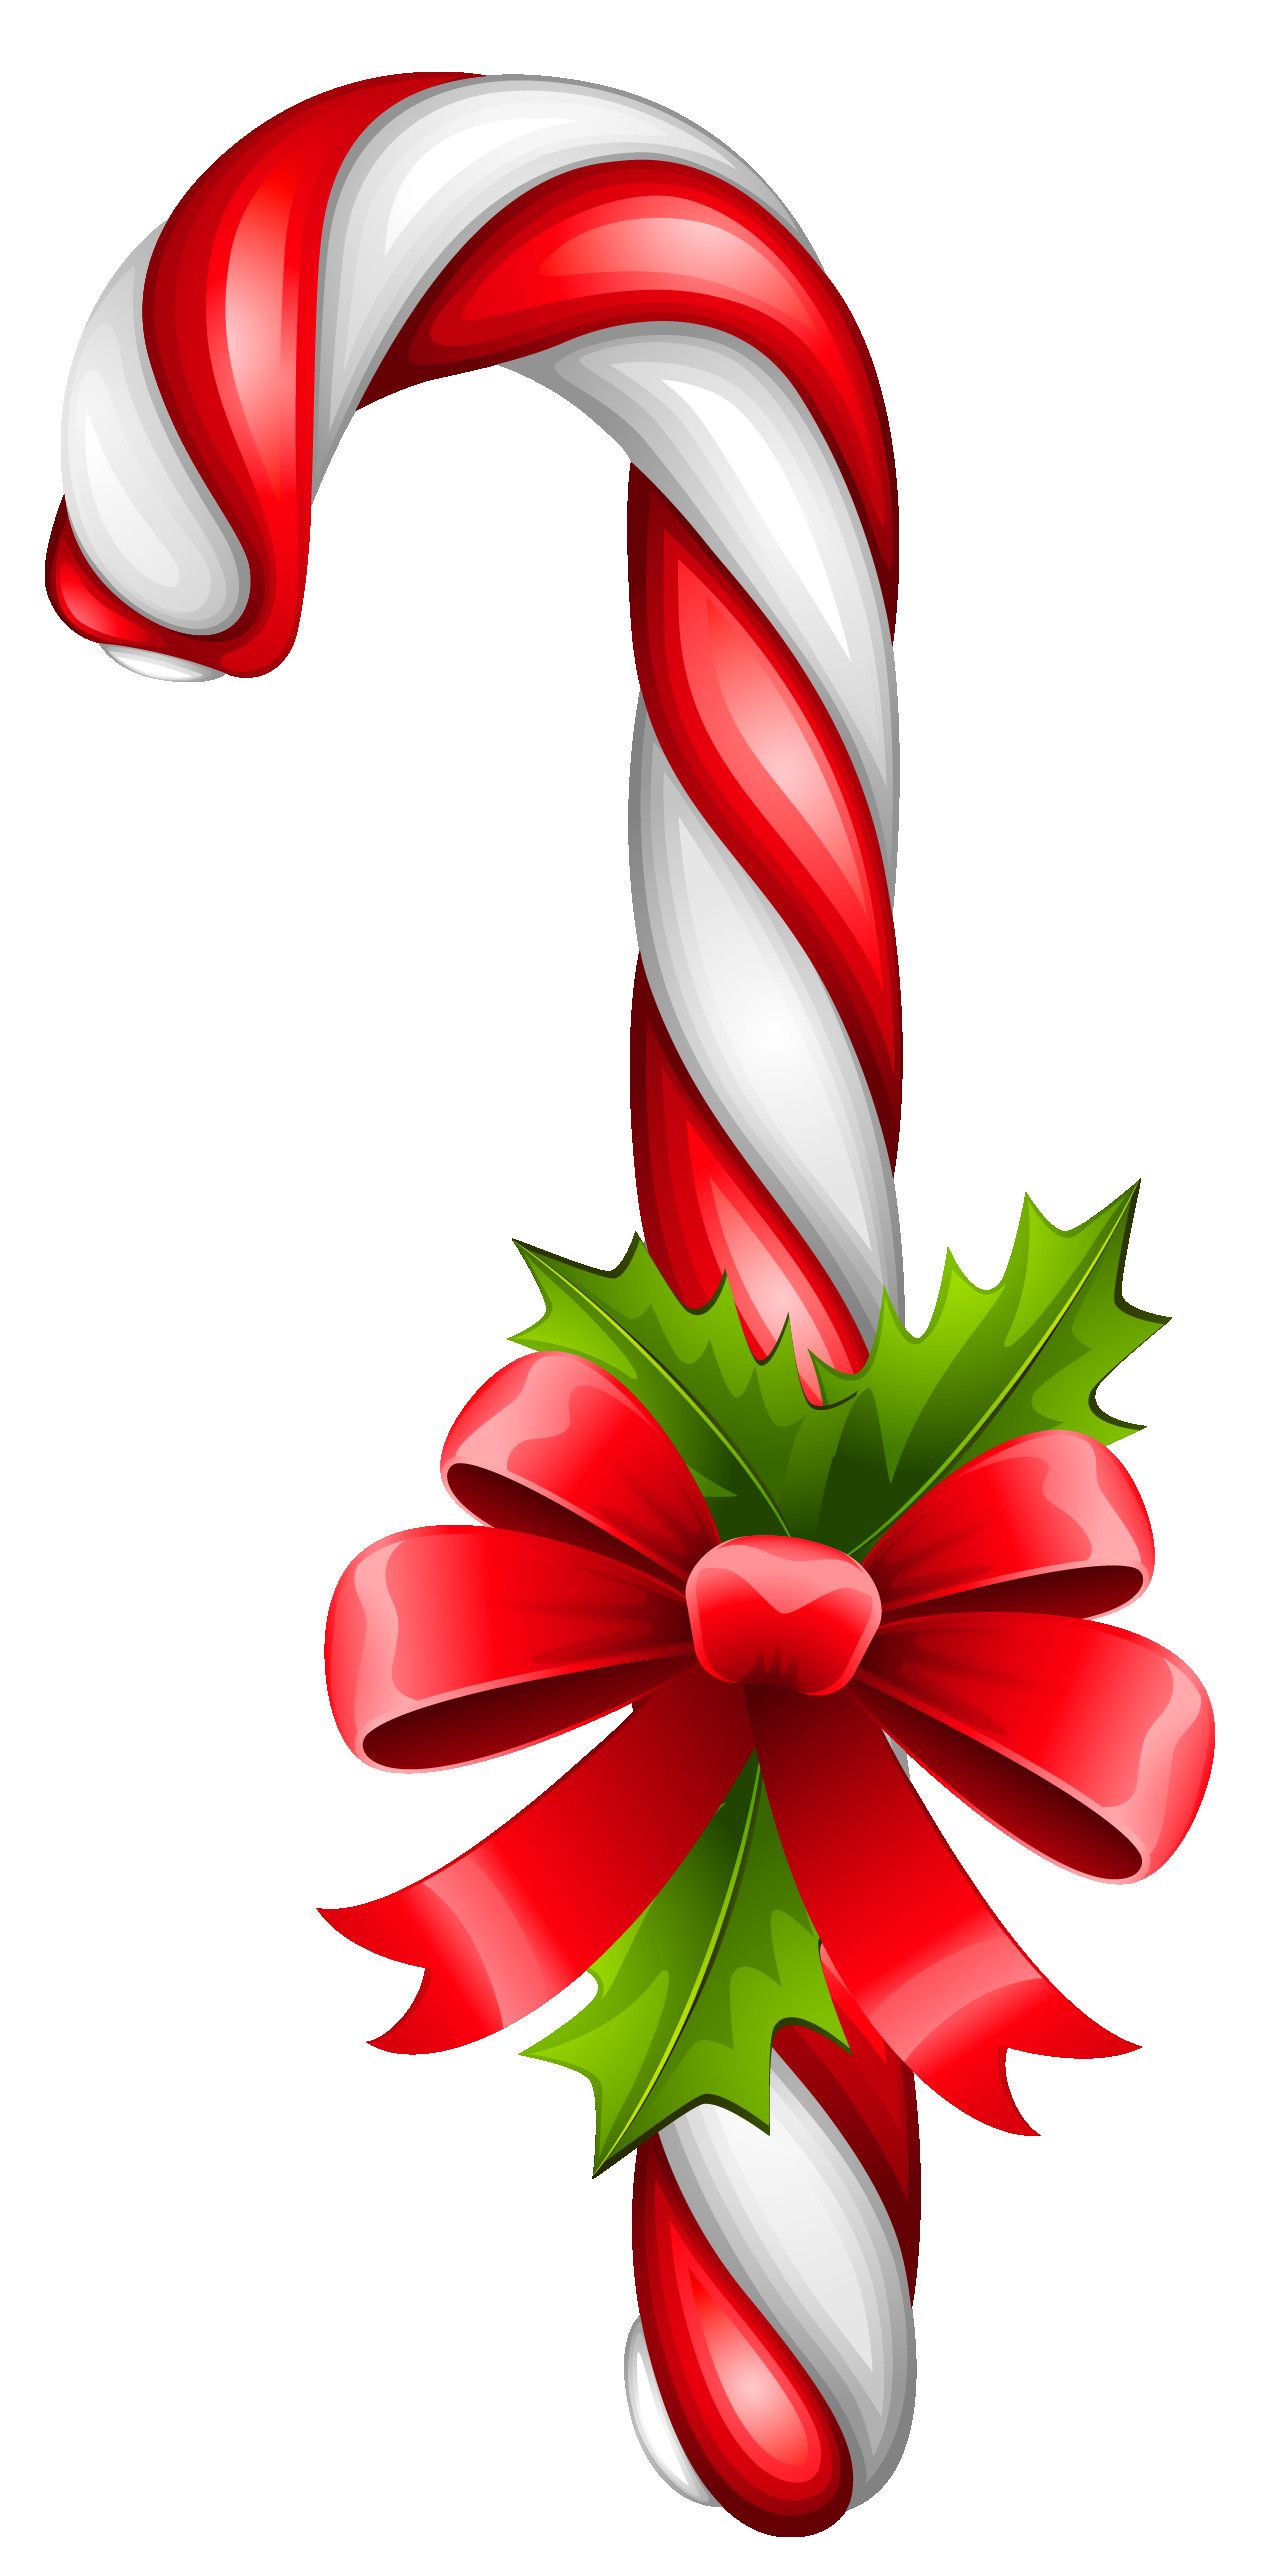 Christmas Candy Cane Clipart  Free candy cane clipart public domain christmas clip art